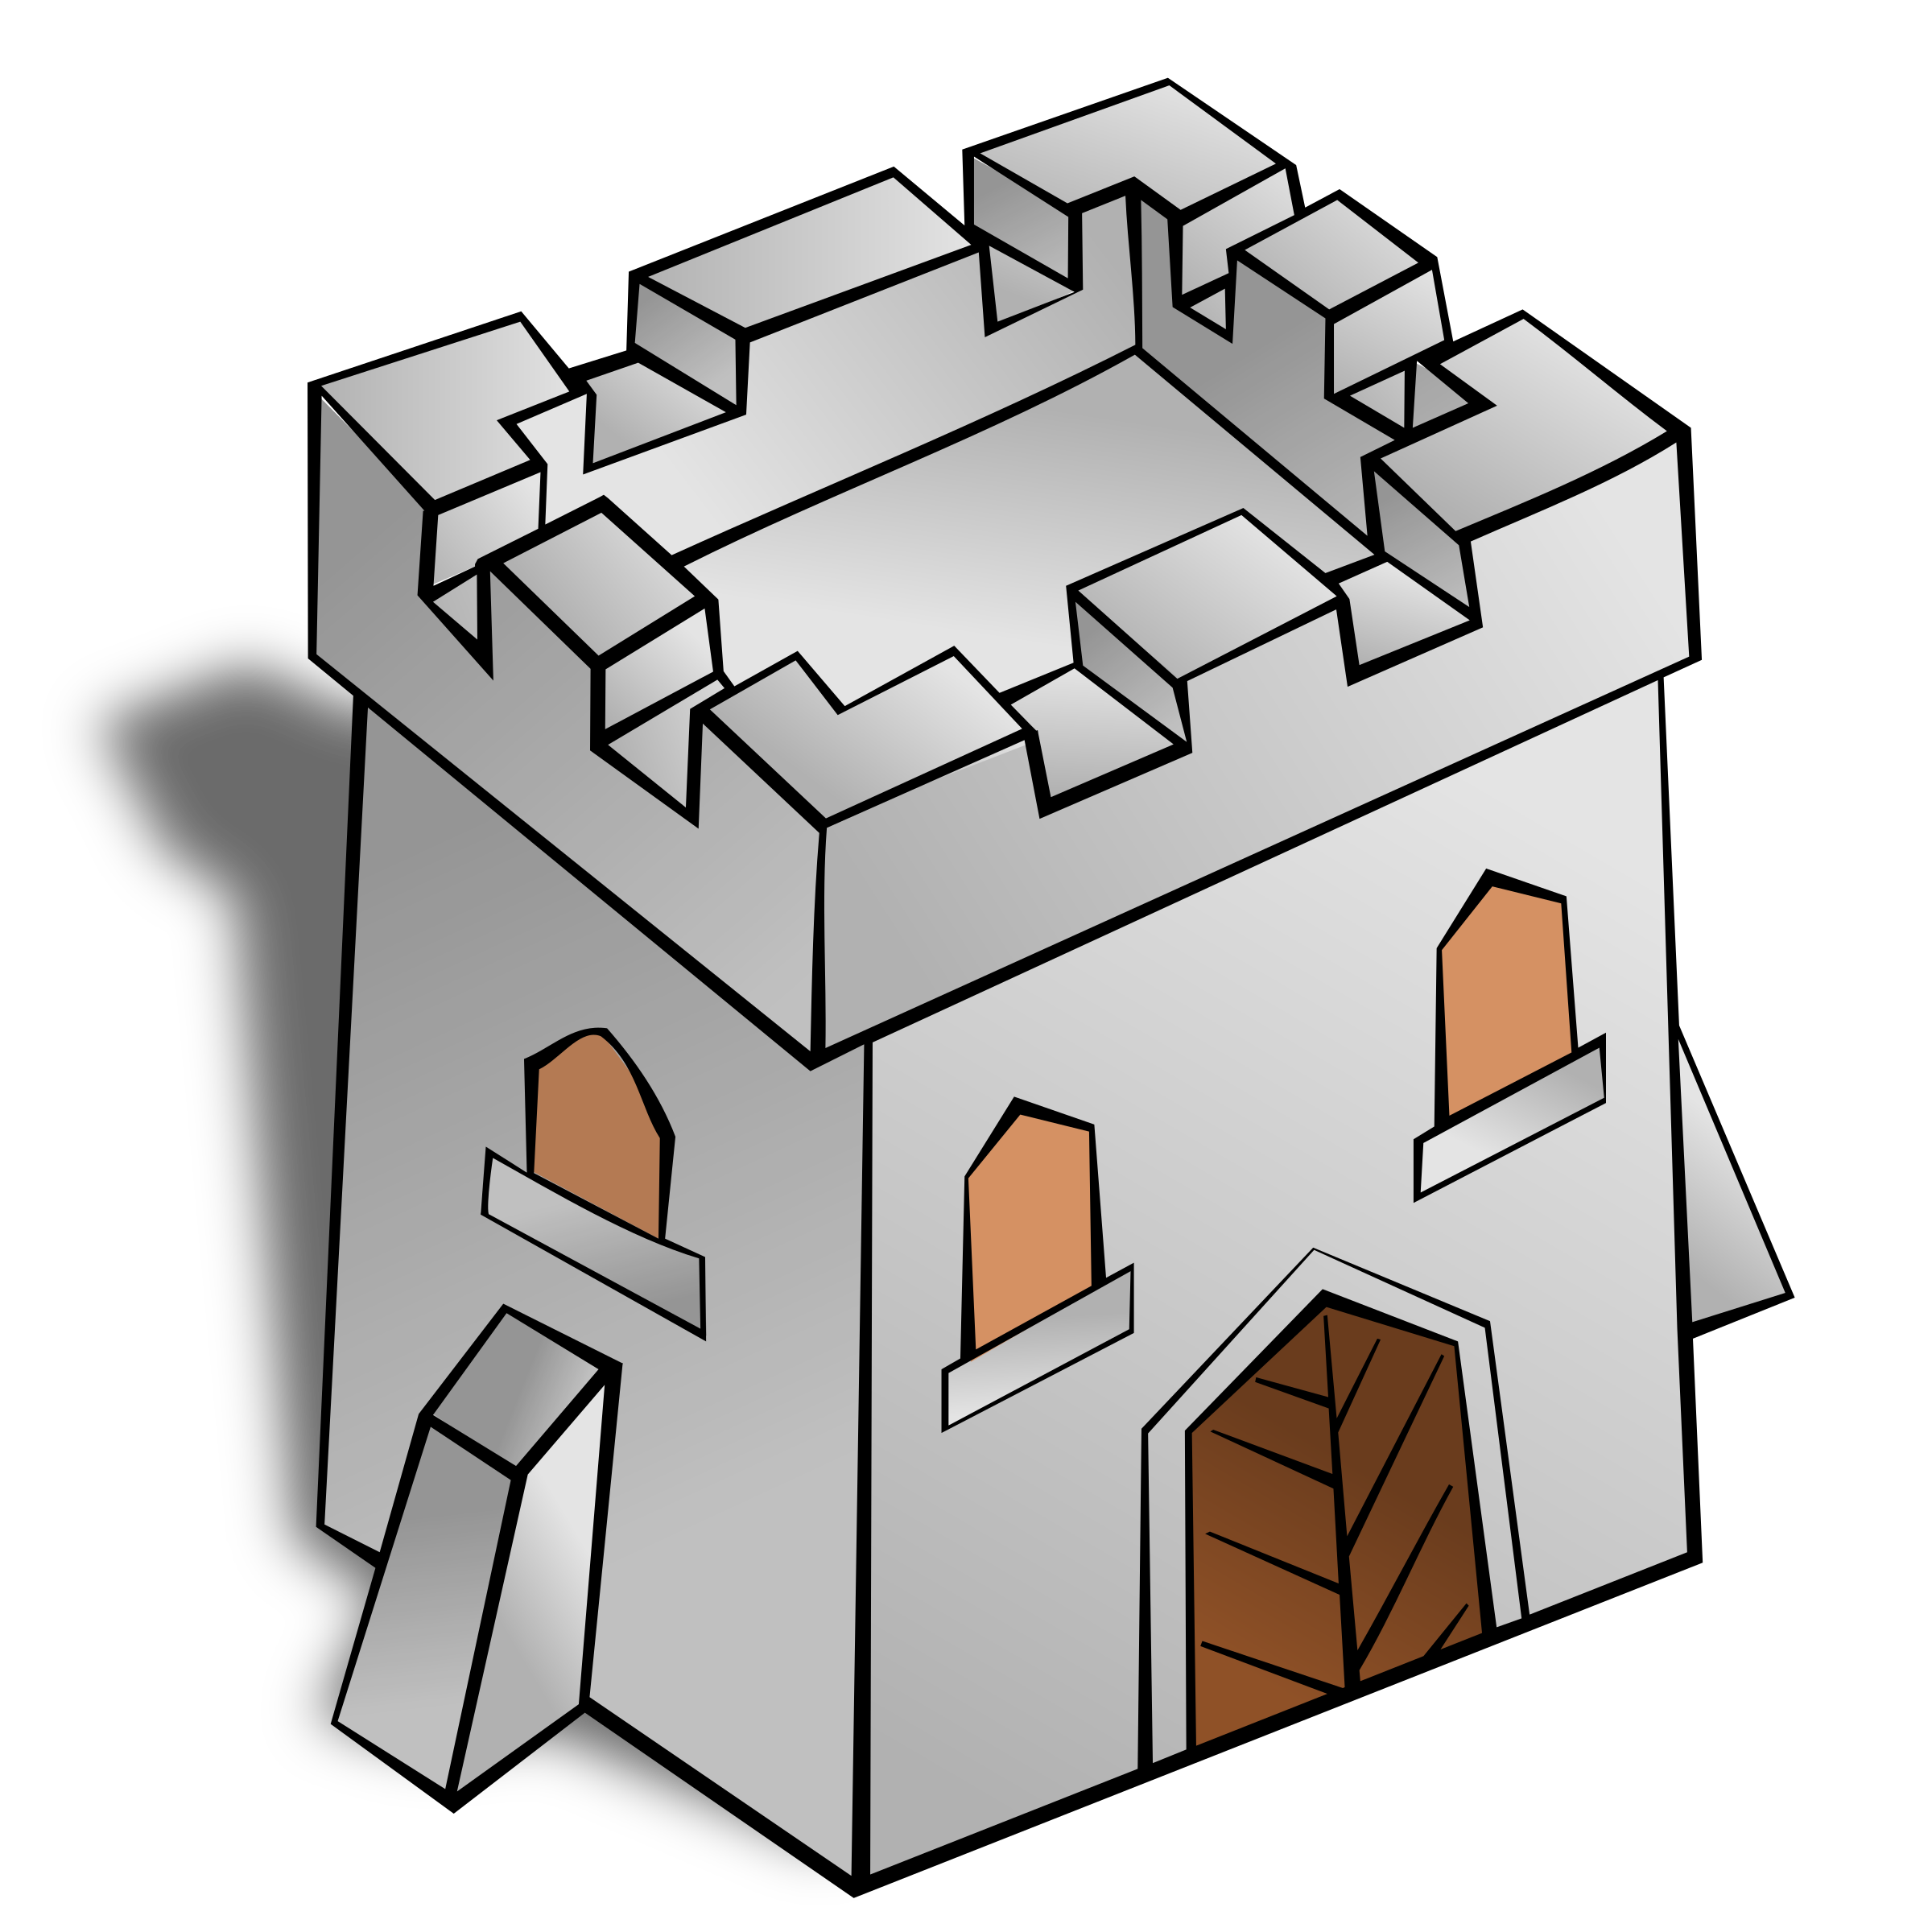 Rpg map symbols tower square by nicubunu part of the fantasy rpg rpg map symbols tower square by nicubunu part of the fantasy rpg map biocorpaavc Image collections